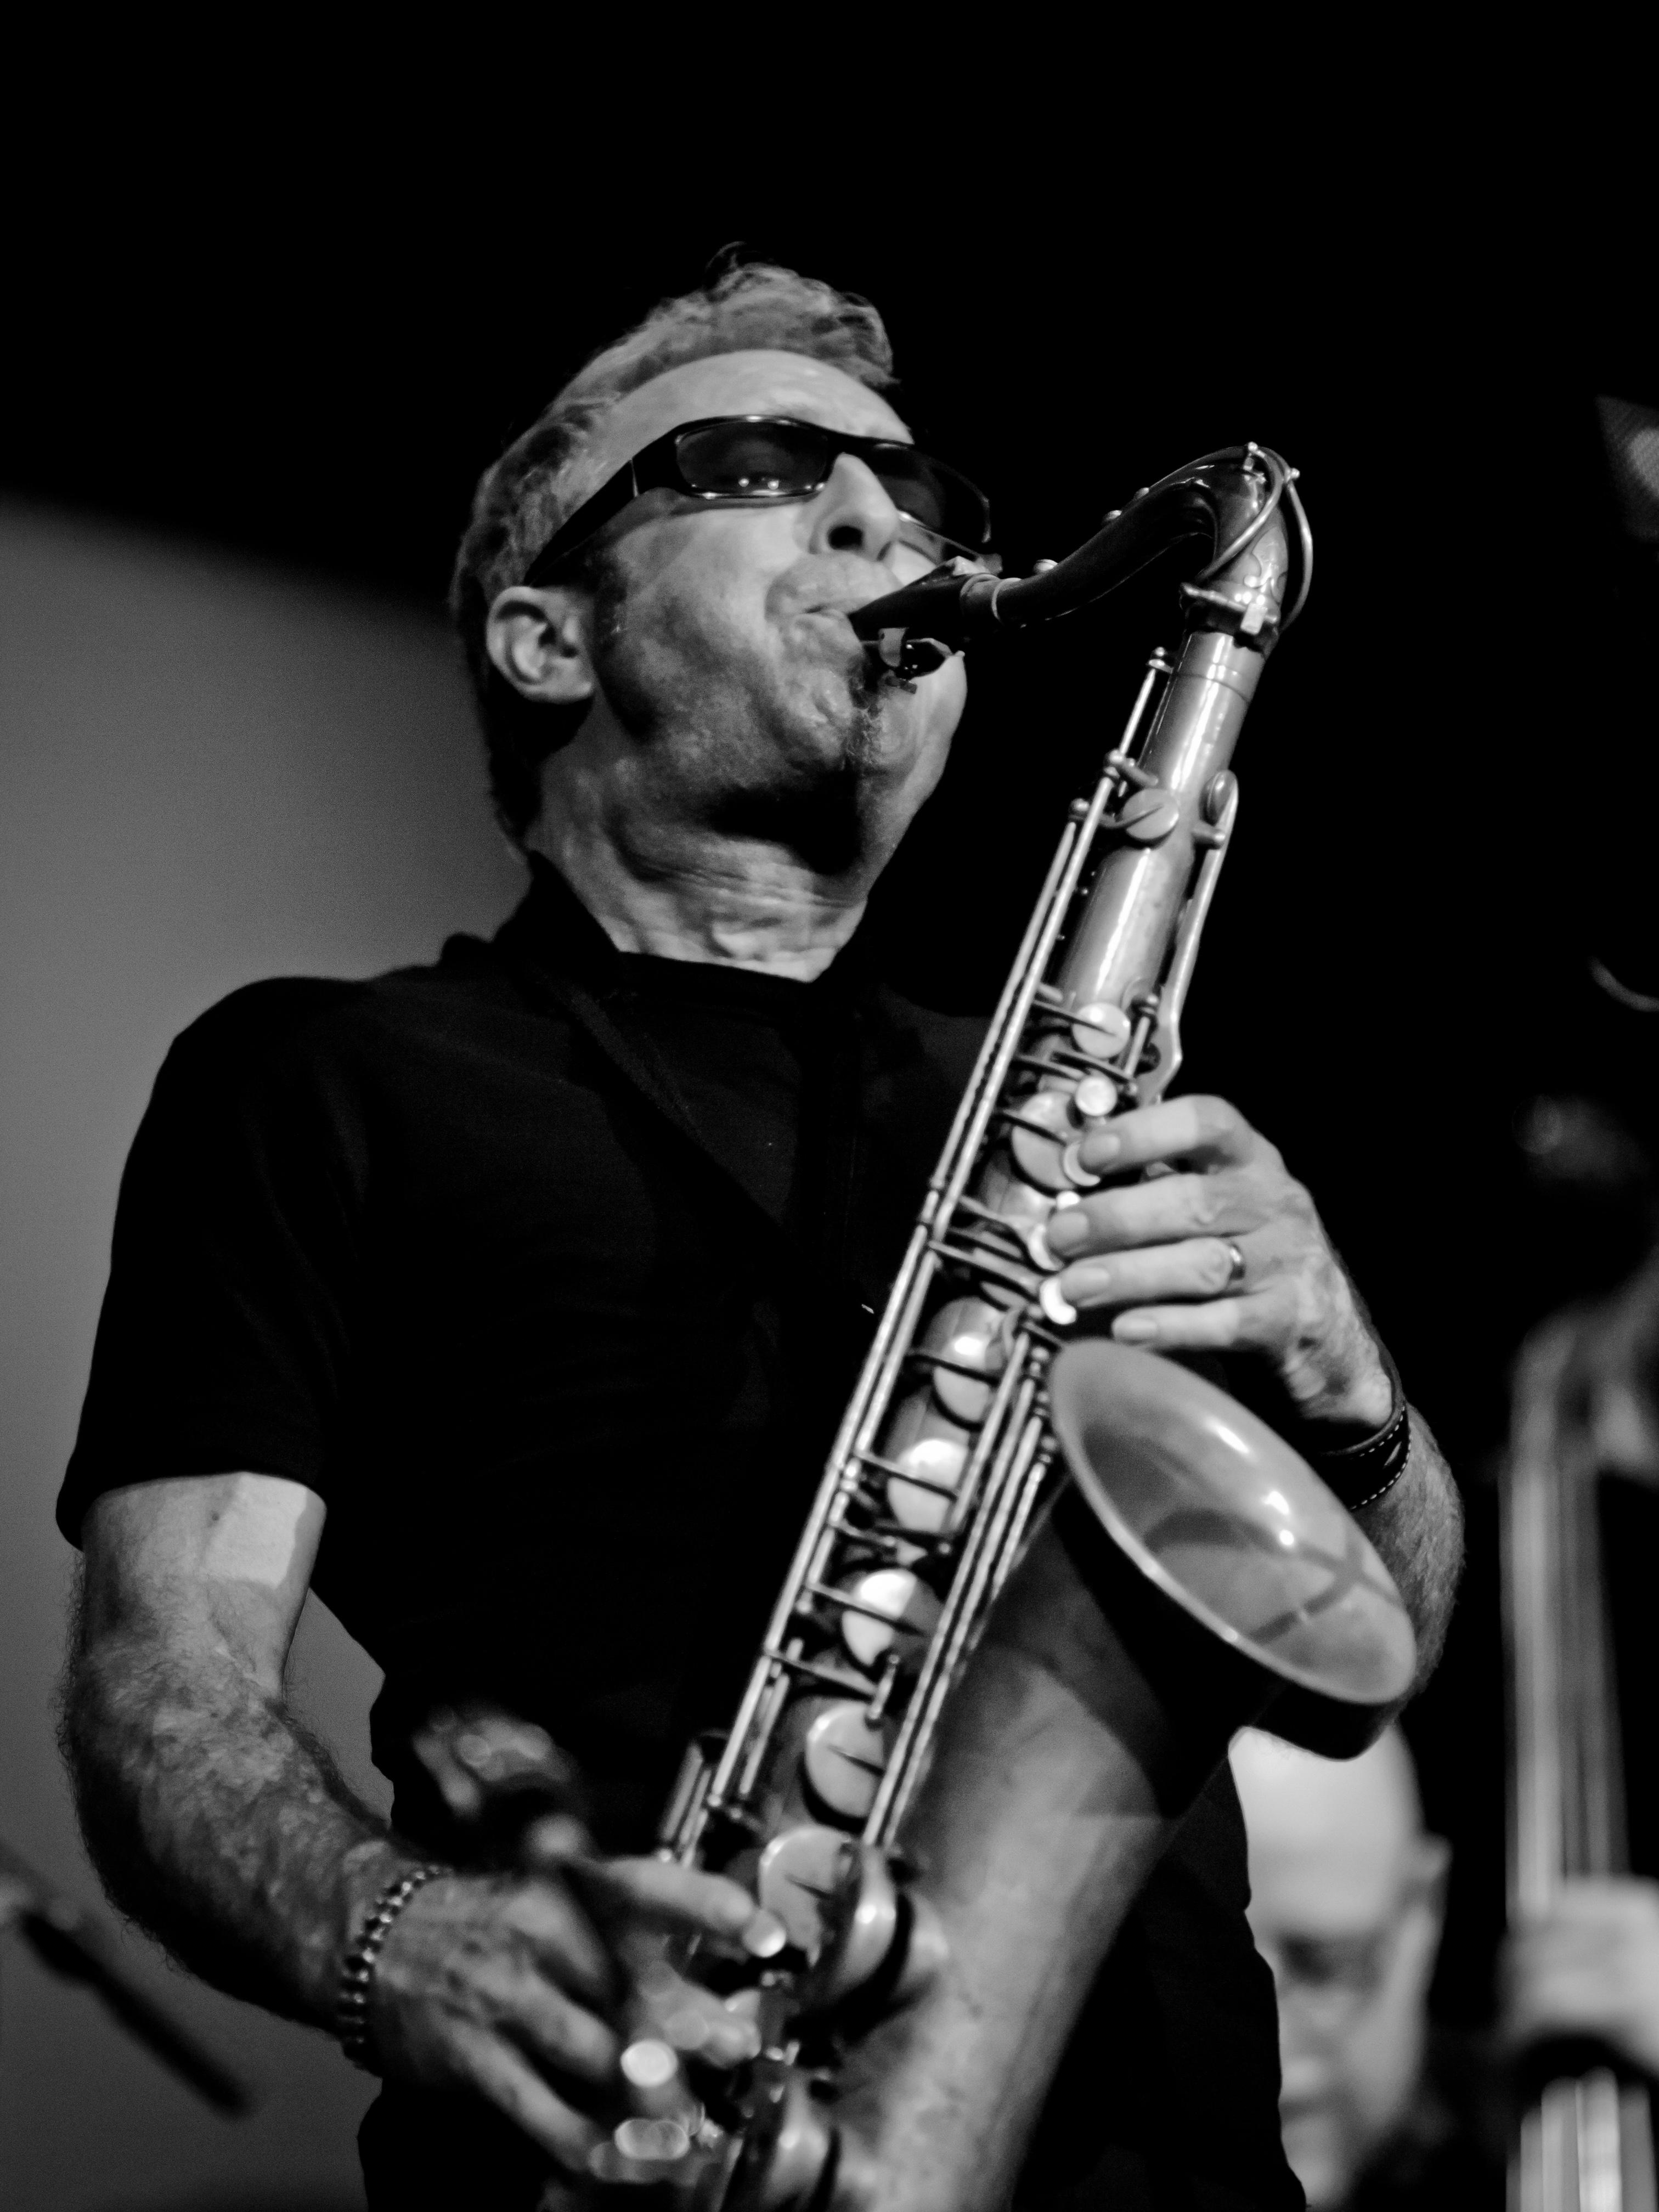 Black-and-white photograph of a man wearing sunglasses indoors playing a saxaphone